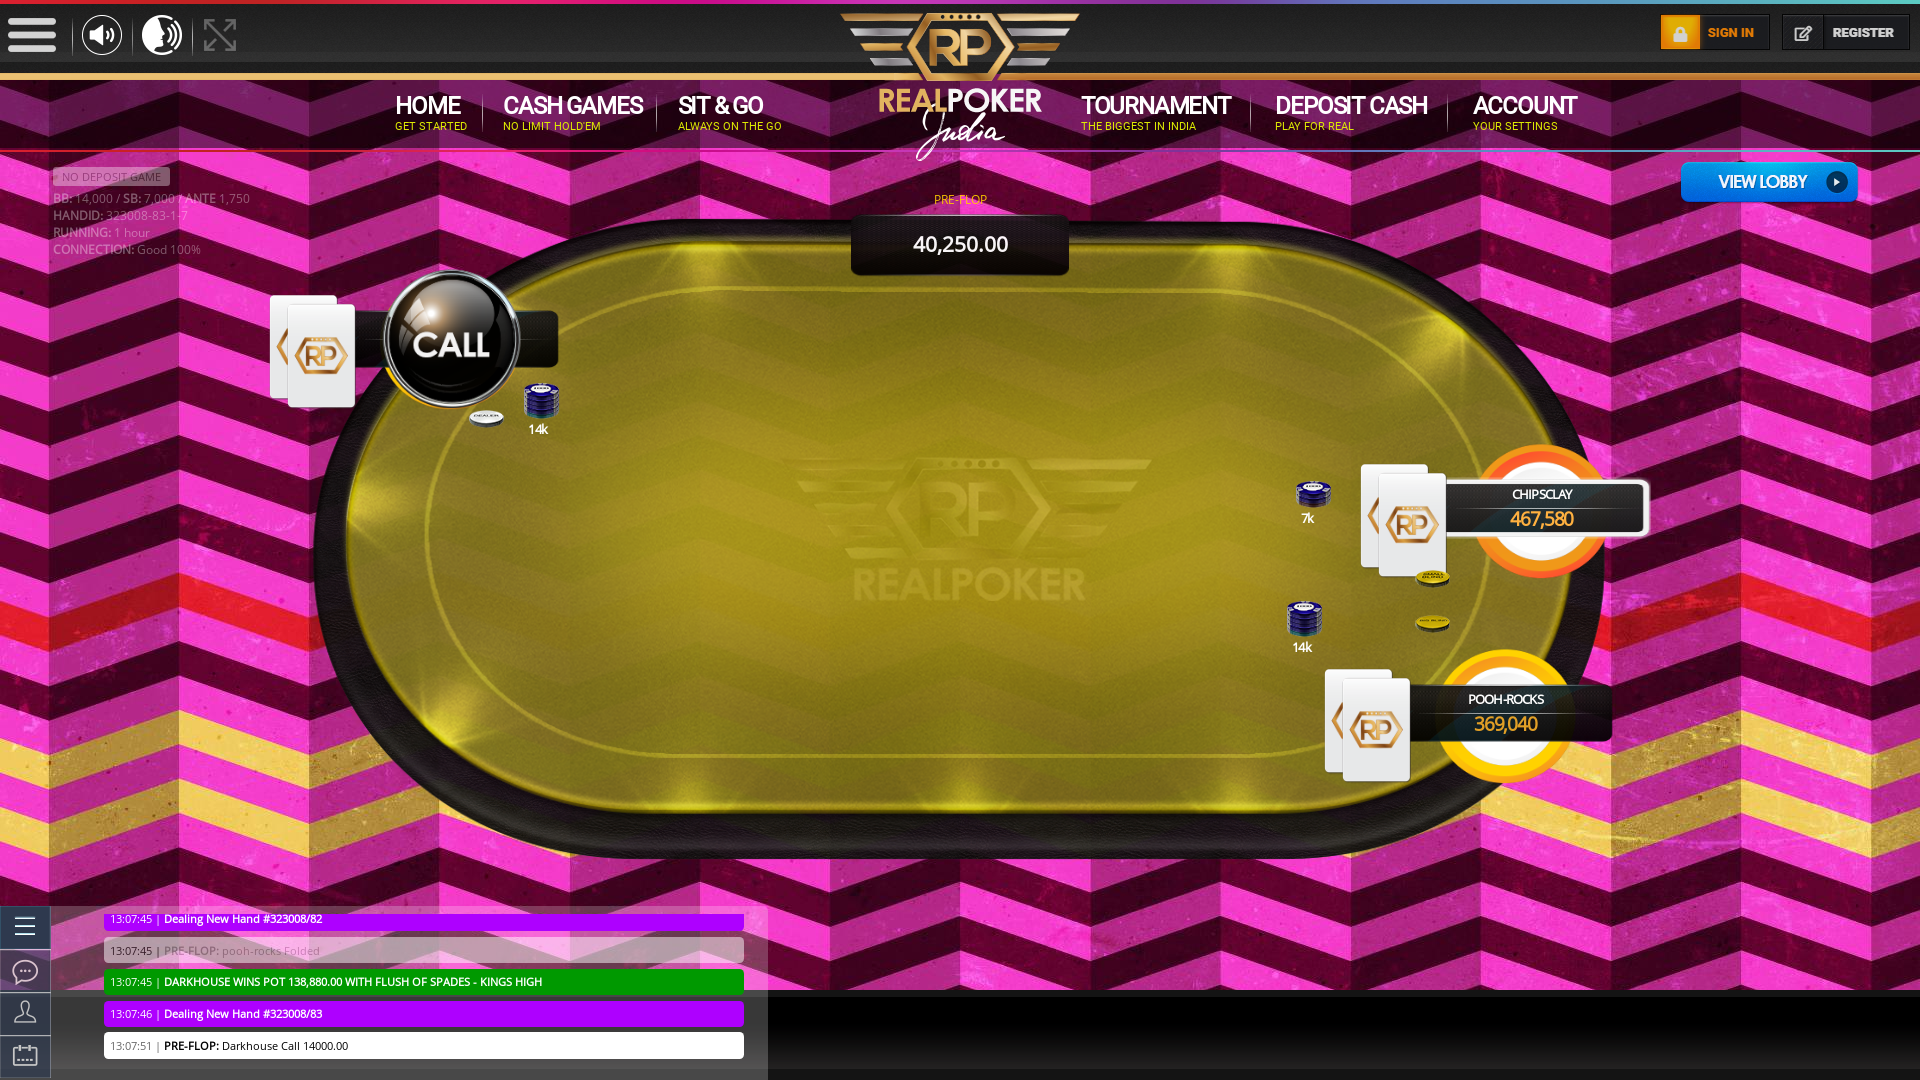 Jasola Vihar, New Delhi online poker game on a 10 player table in the 94th minute of the game